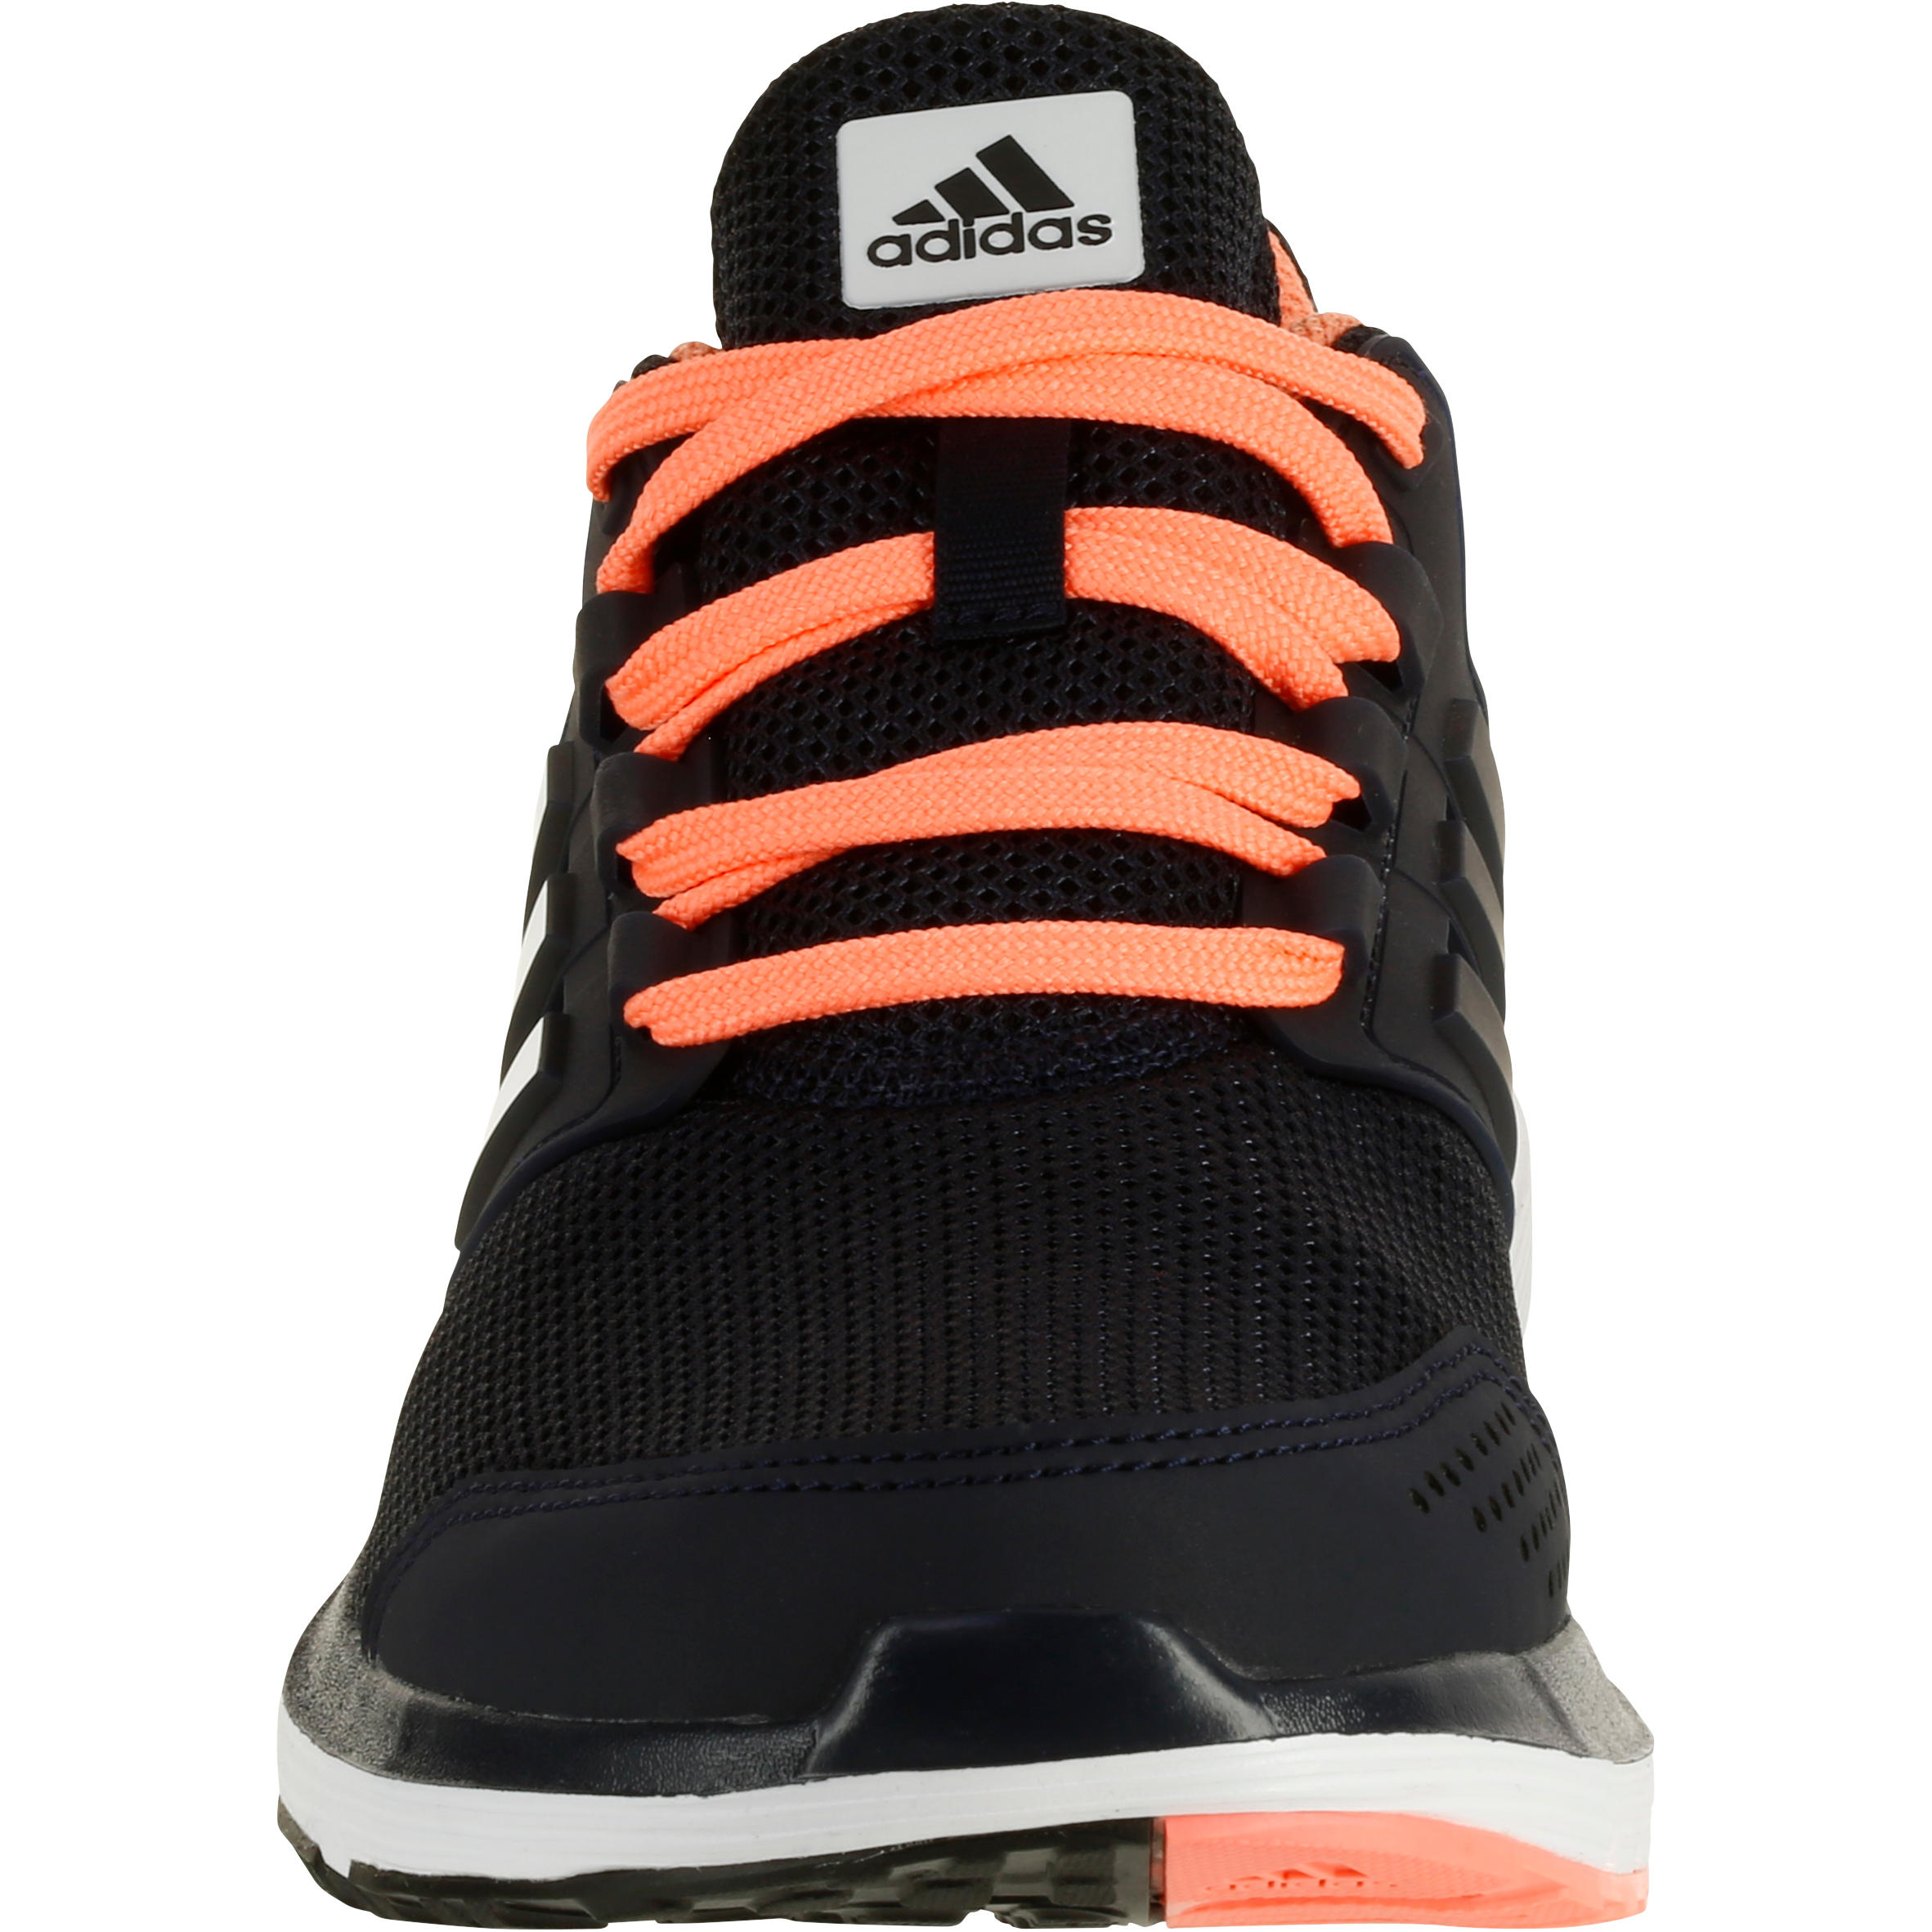 A 4 Noir Pied Chaussures Course Femme Jogging Adidas Galaxy Pk8XwOn0